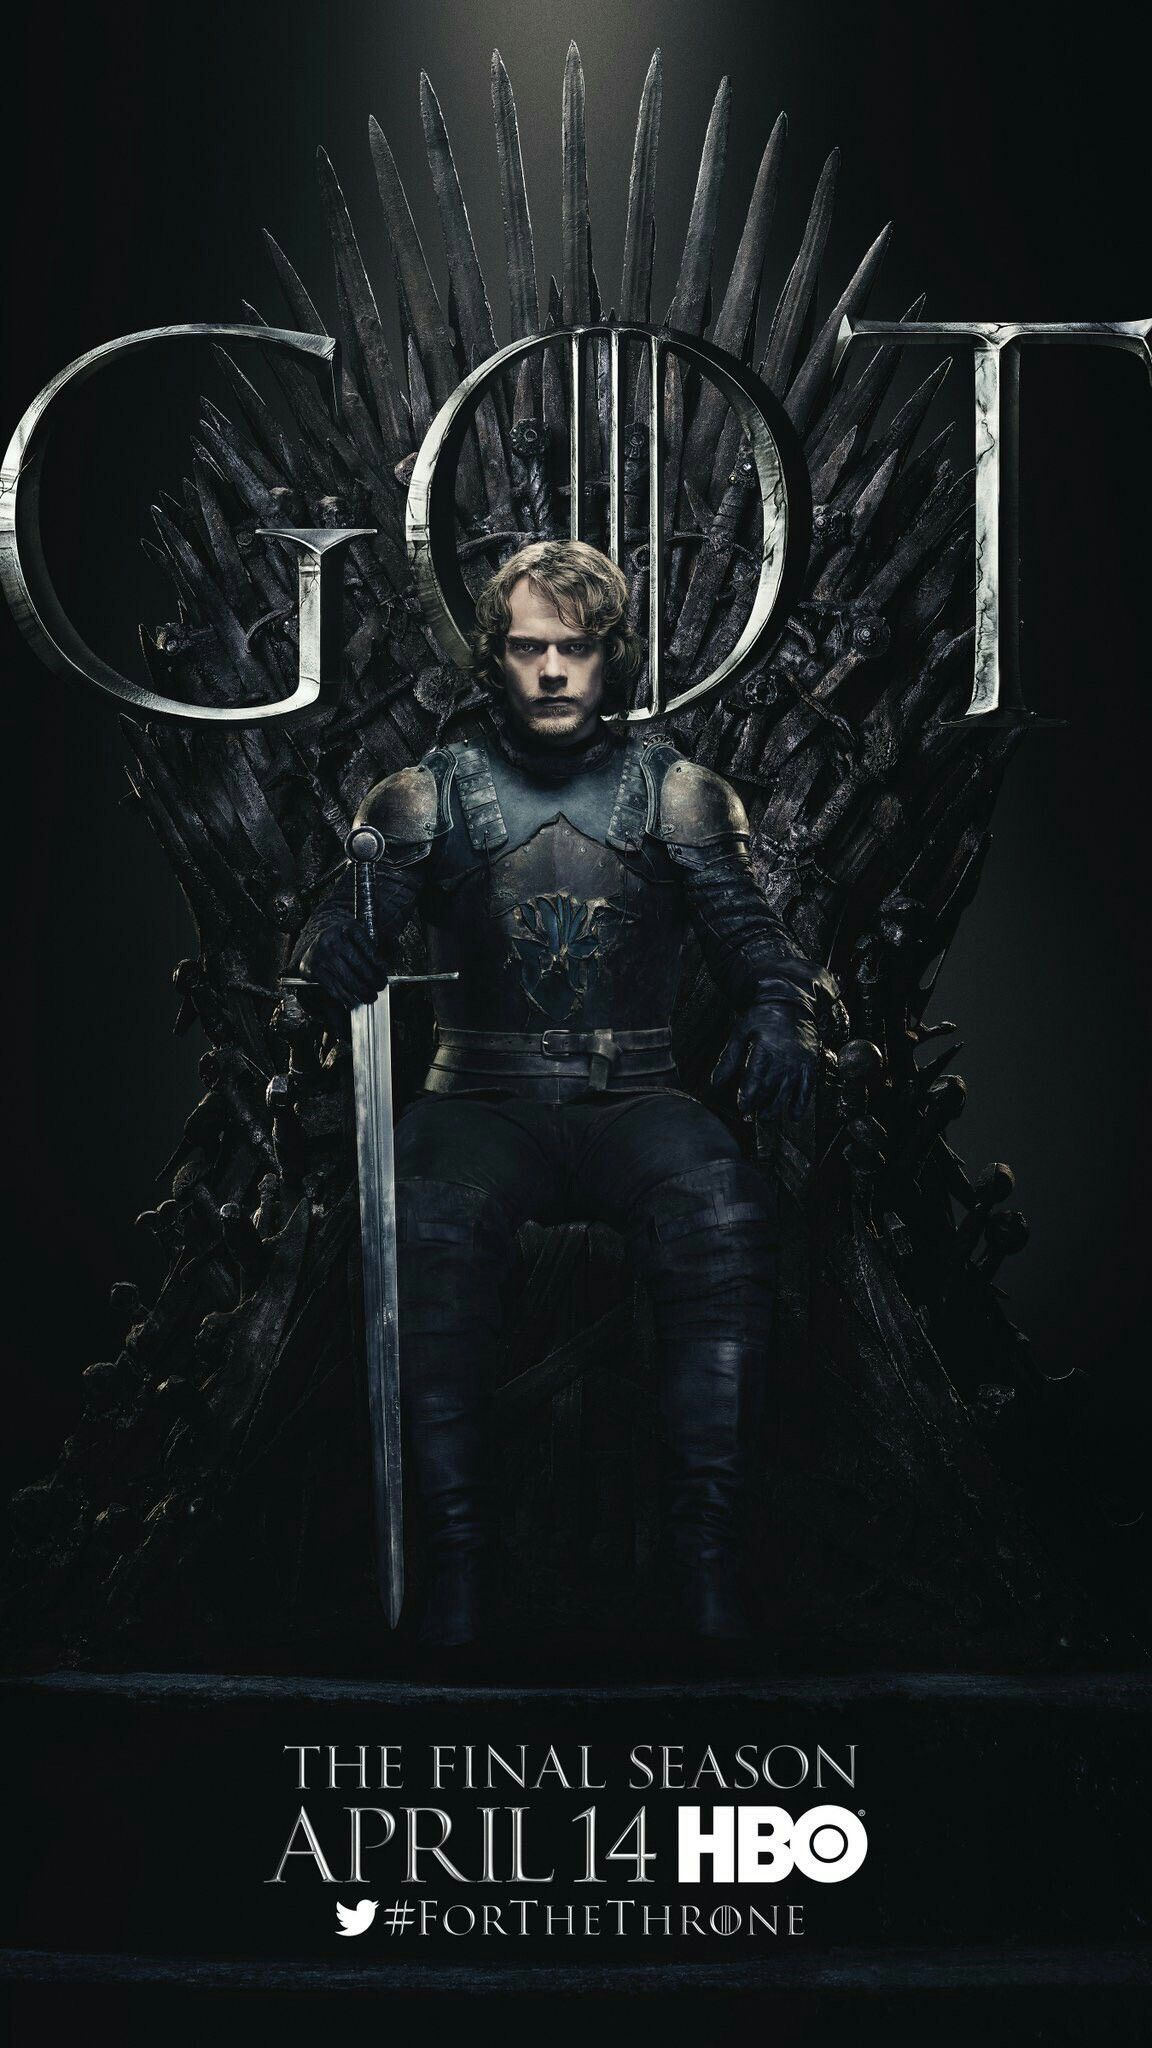 Game Of Thrones Season 8 Theon , HD Wallpaper & Backgrounds